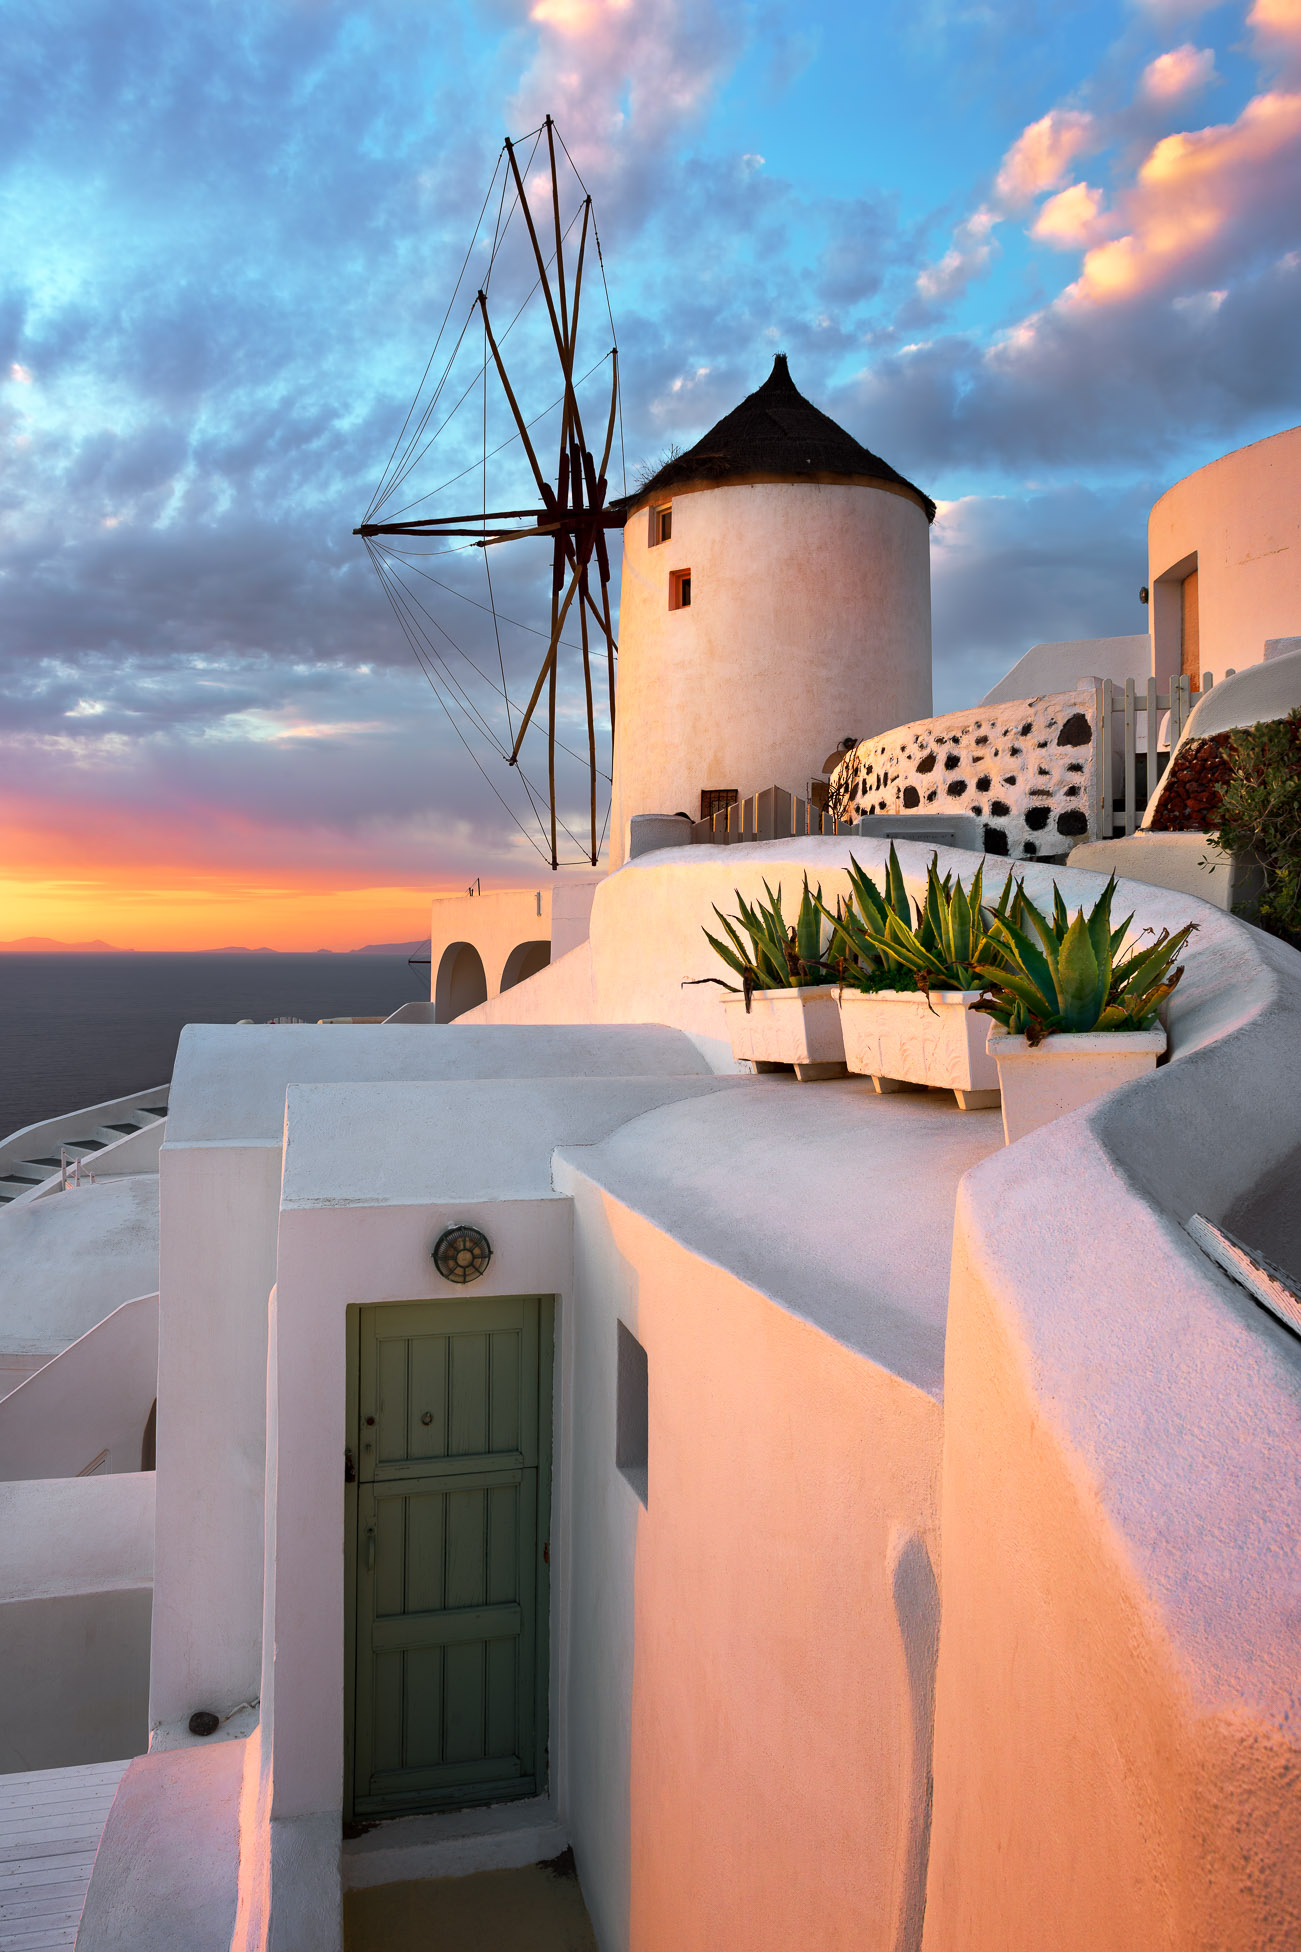 Windmill in Oia Village in the Evening, Santorini, Greece